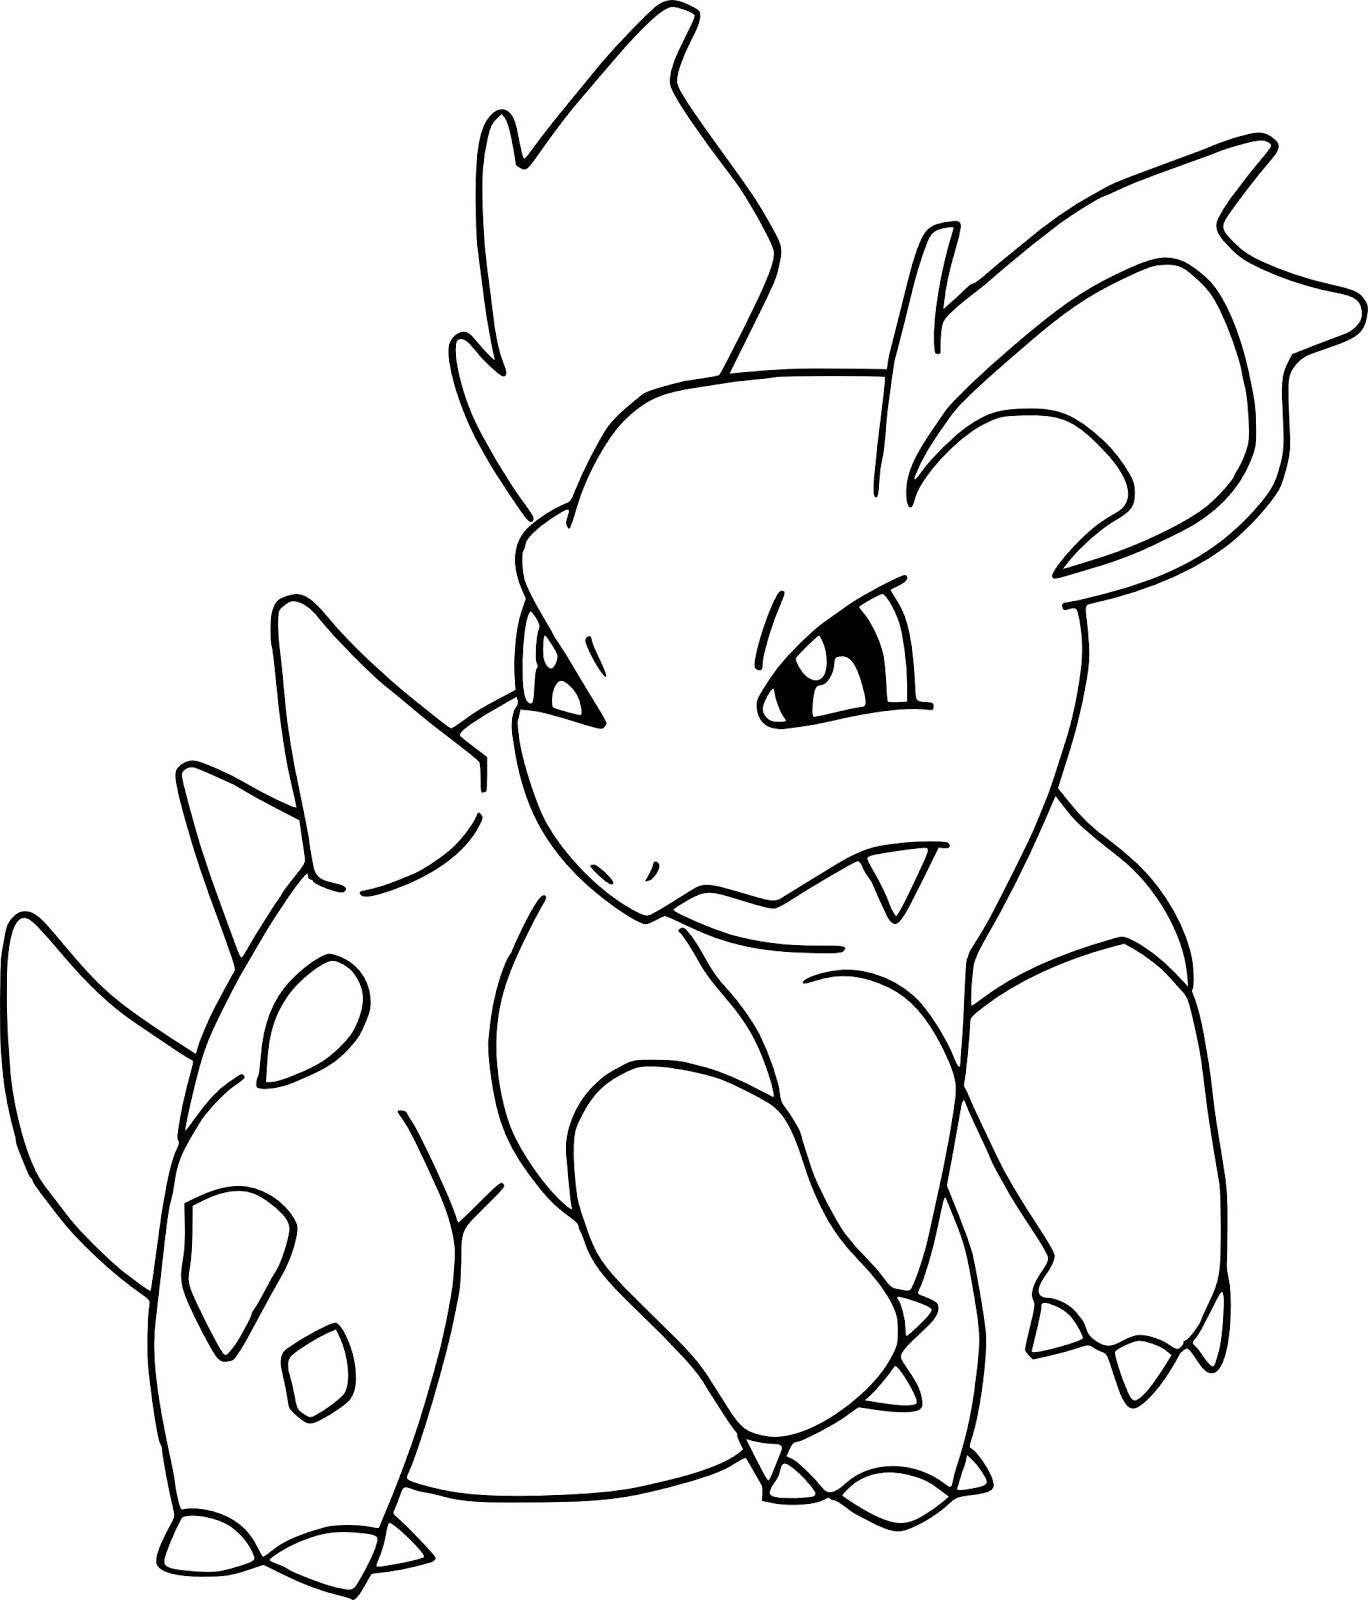 Nidorina Pokemon Coloring Pages For Kids Pokemon Coloring Pages Coloring Pages Pokemon Coloring